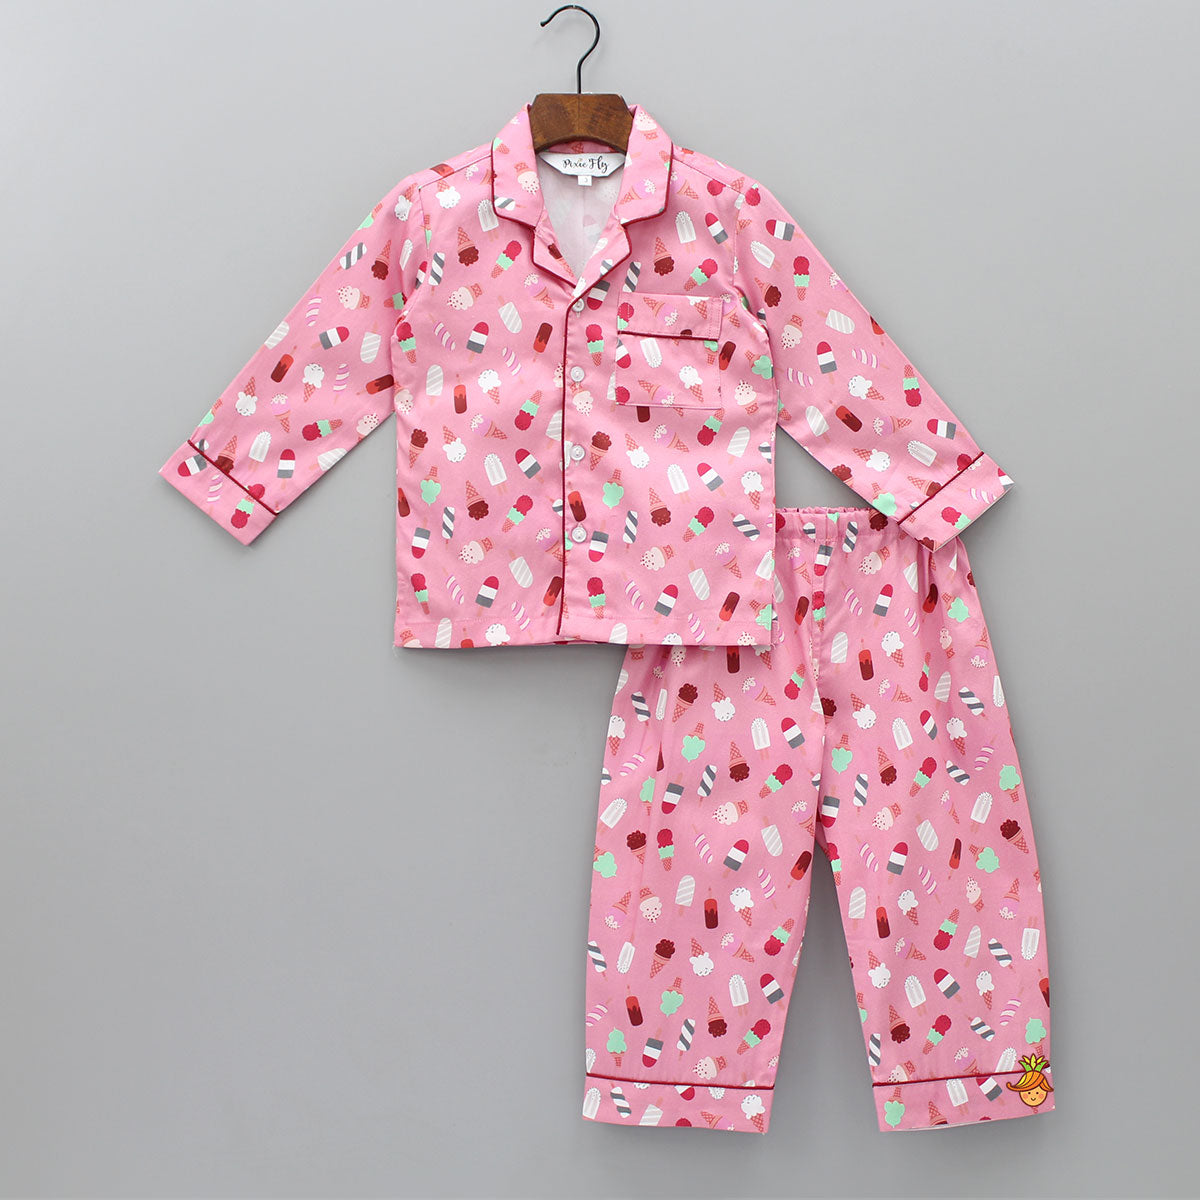 Ice -Cream Printed Sleepwear